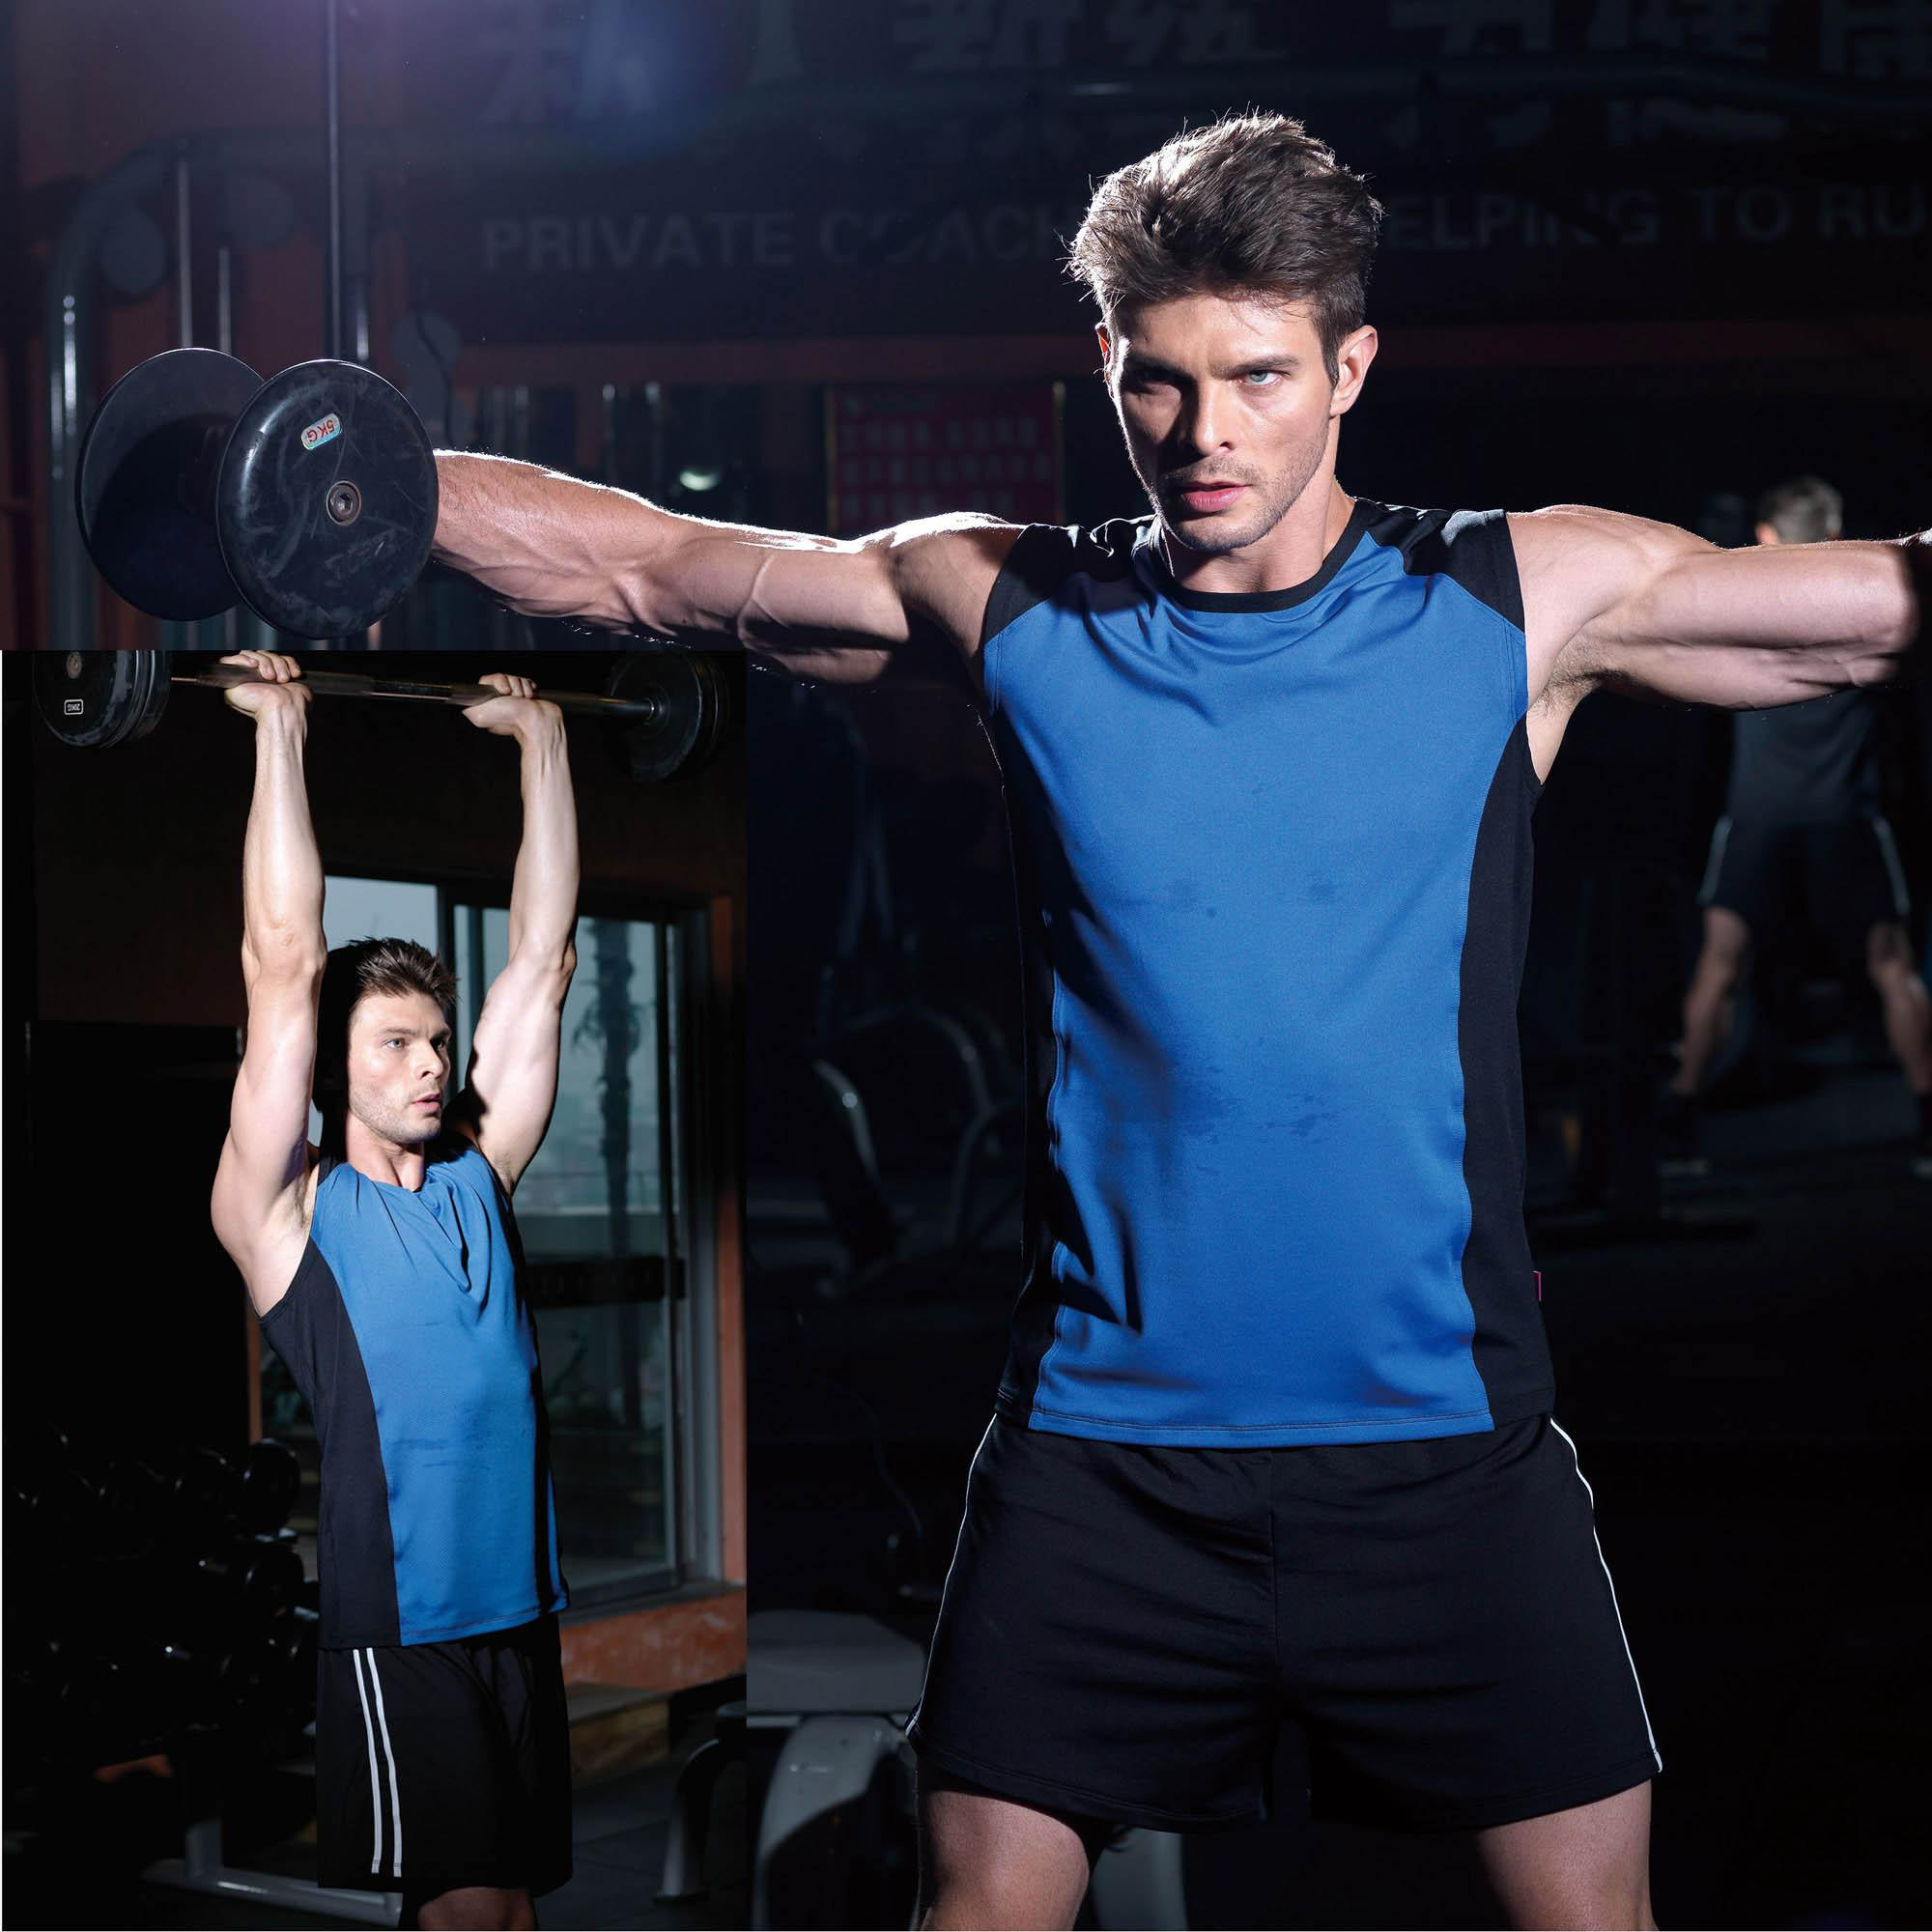 Clothing stores online Athletic clothing stores